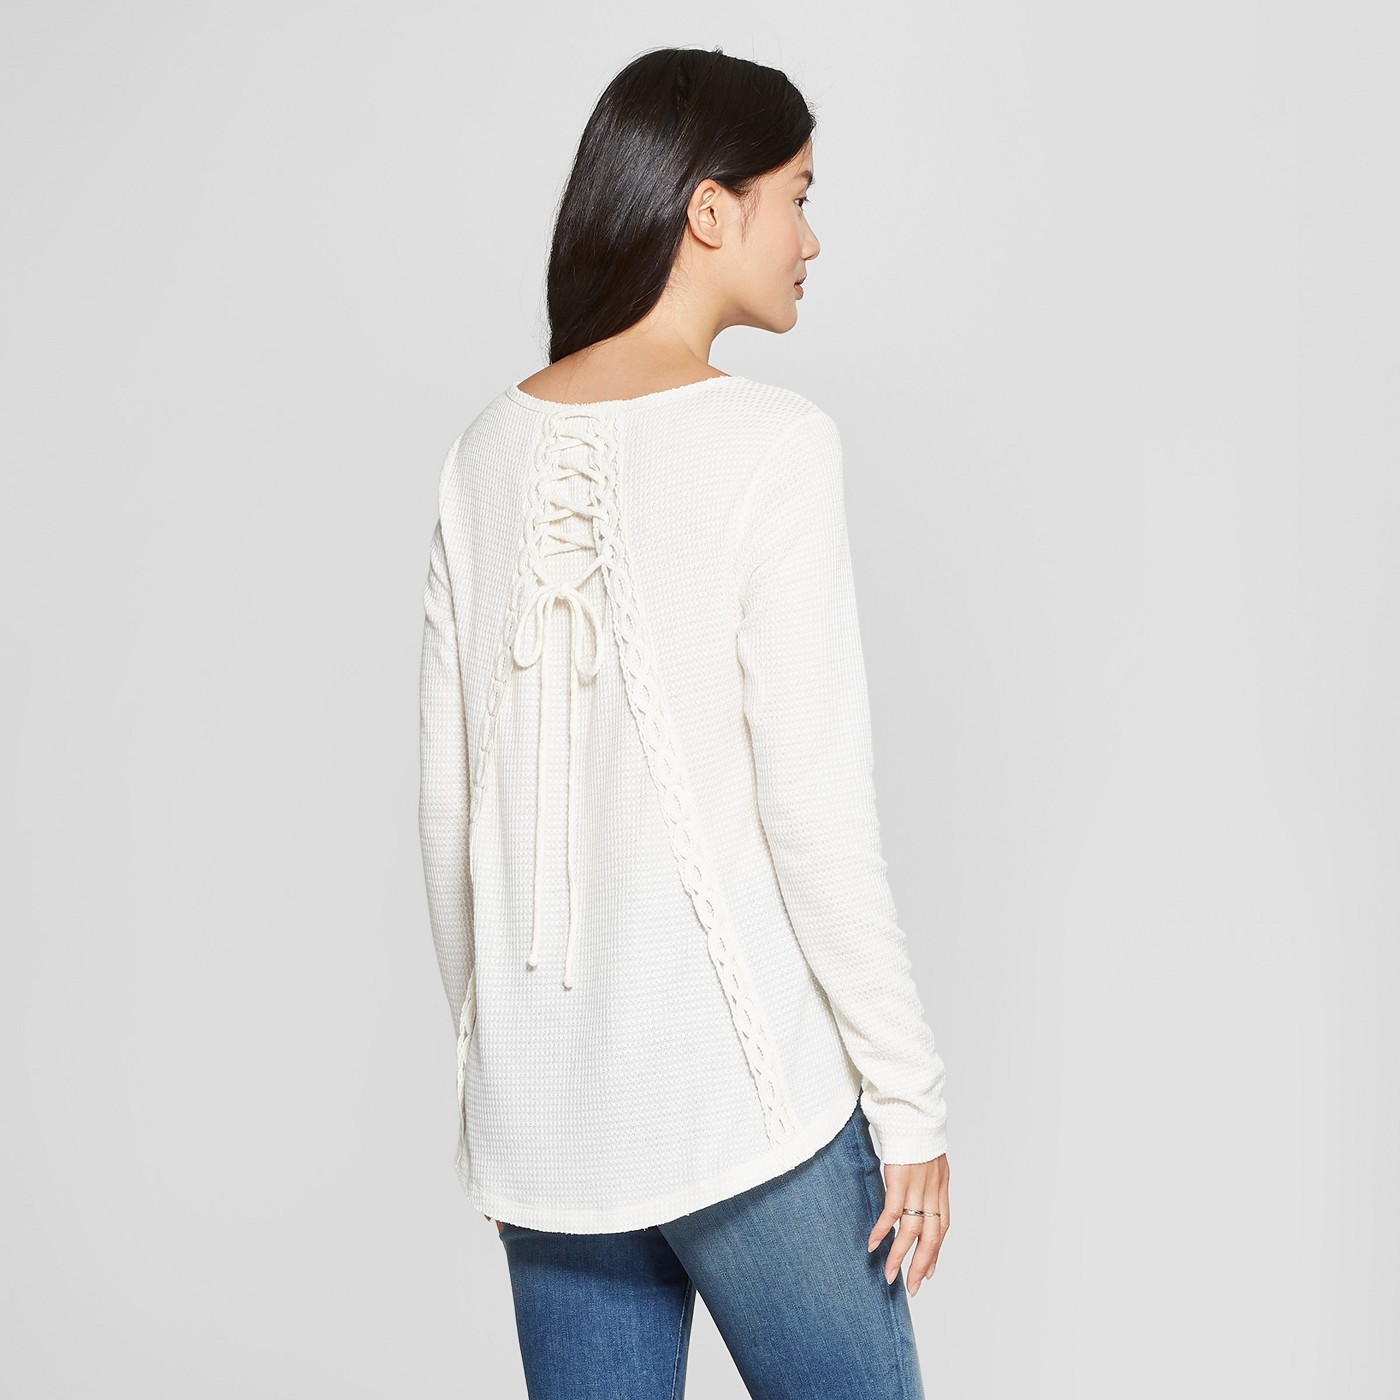 Women's Long Sleeve Waffle Knit Lace-Up Back Peasant Top - Knox Rose™ Ivory - image 2 of 2